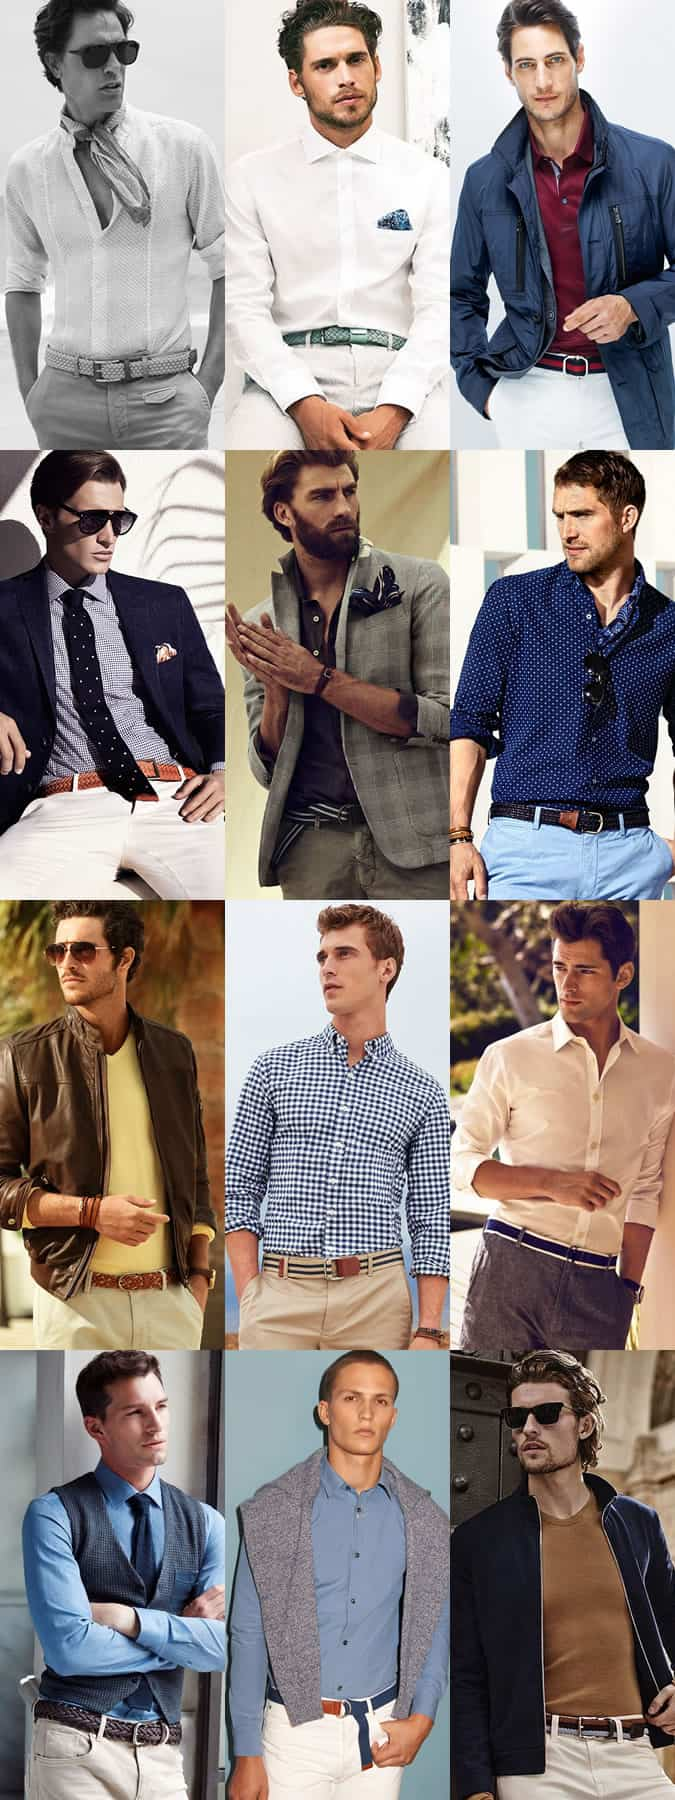 Men's Woven, Webbed, Nylon, Canvas and Braided Belts Outfit Inspiration Lookbook: Spring/Summer 2015